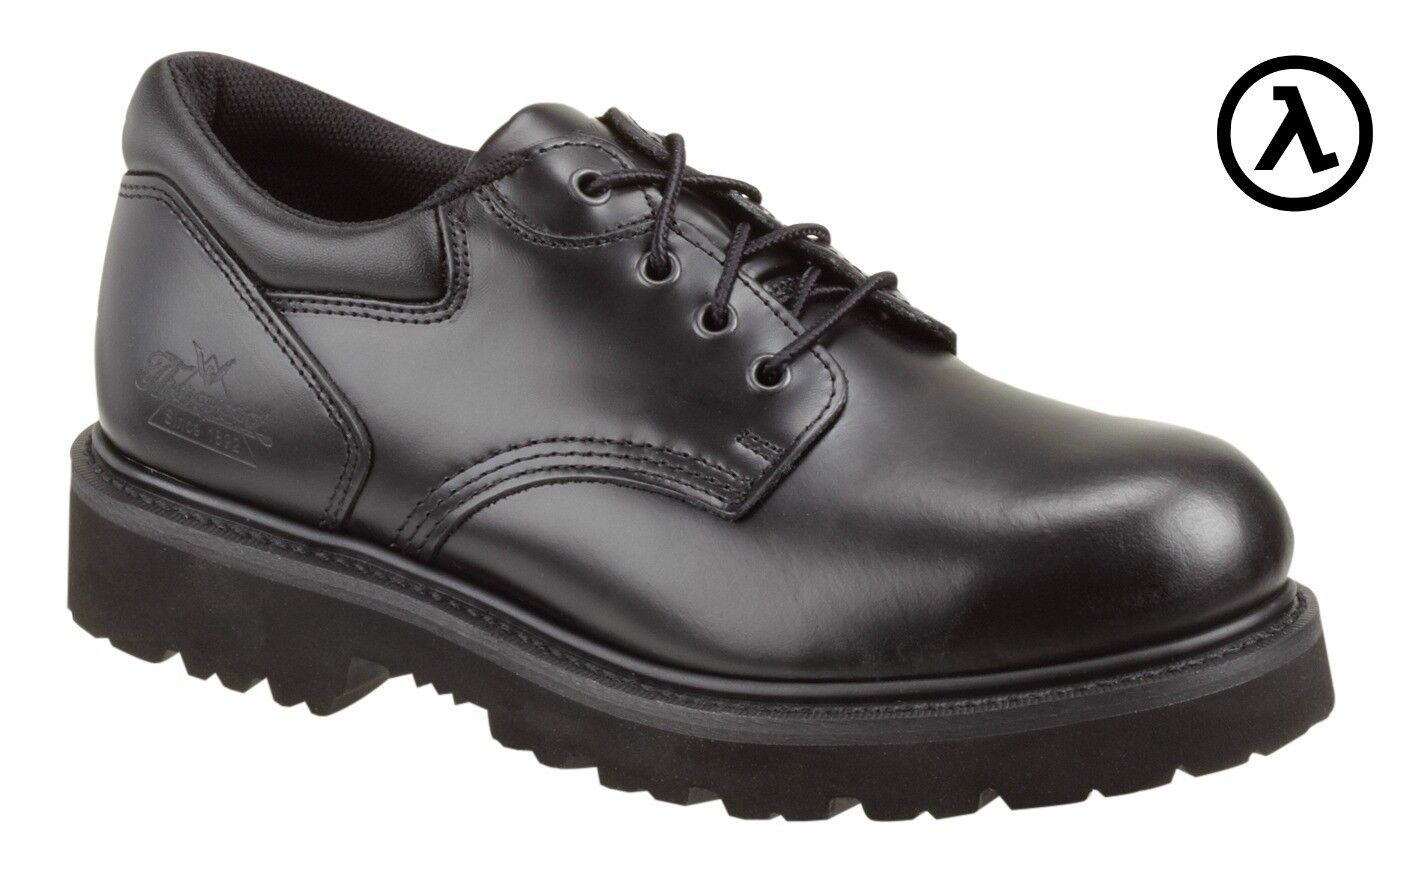 tempo libero THoroGOOD STEEL TOE TOE TOE EH-RATED OXFORD WORK scarpe 804-6449 - ALL DimensioneS - NEW  connotazione di lusso low-key